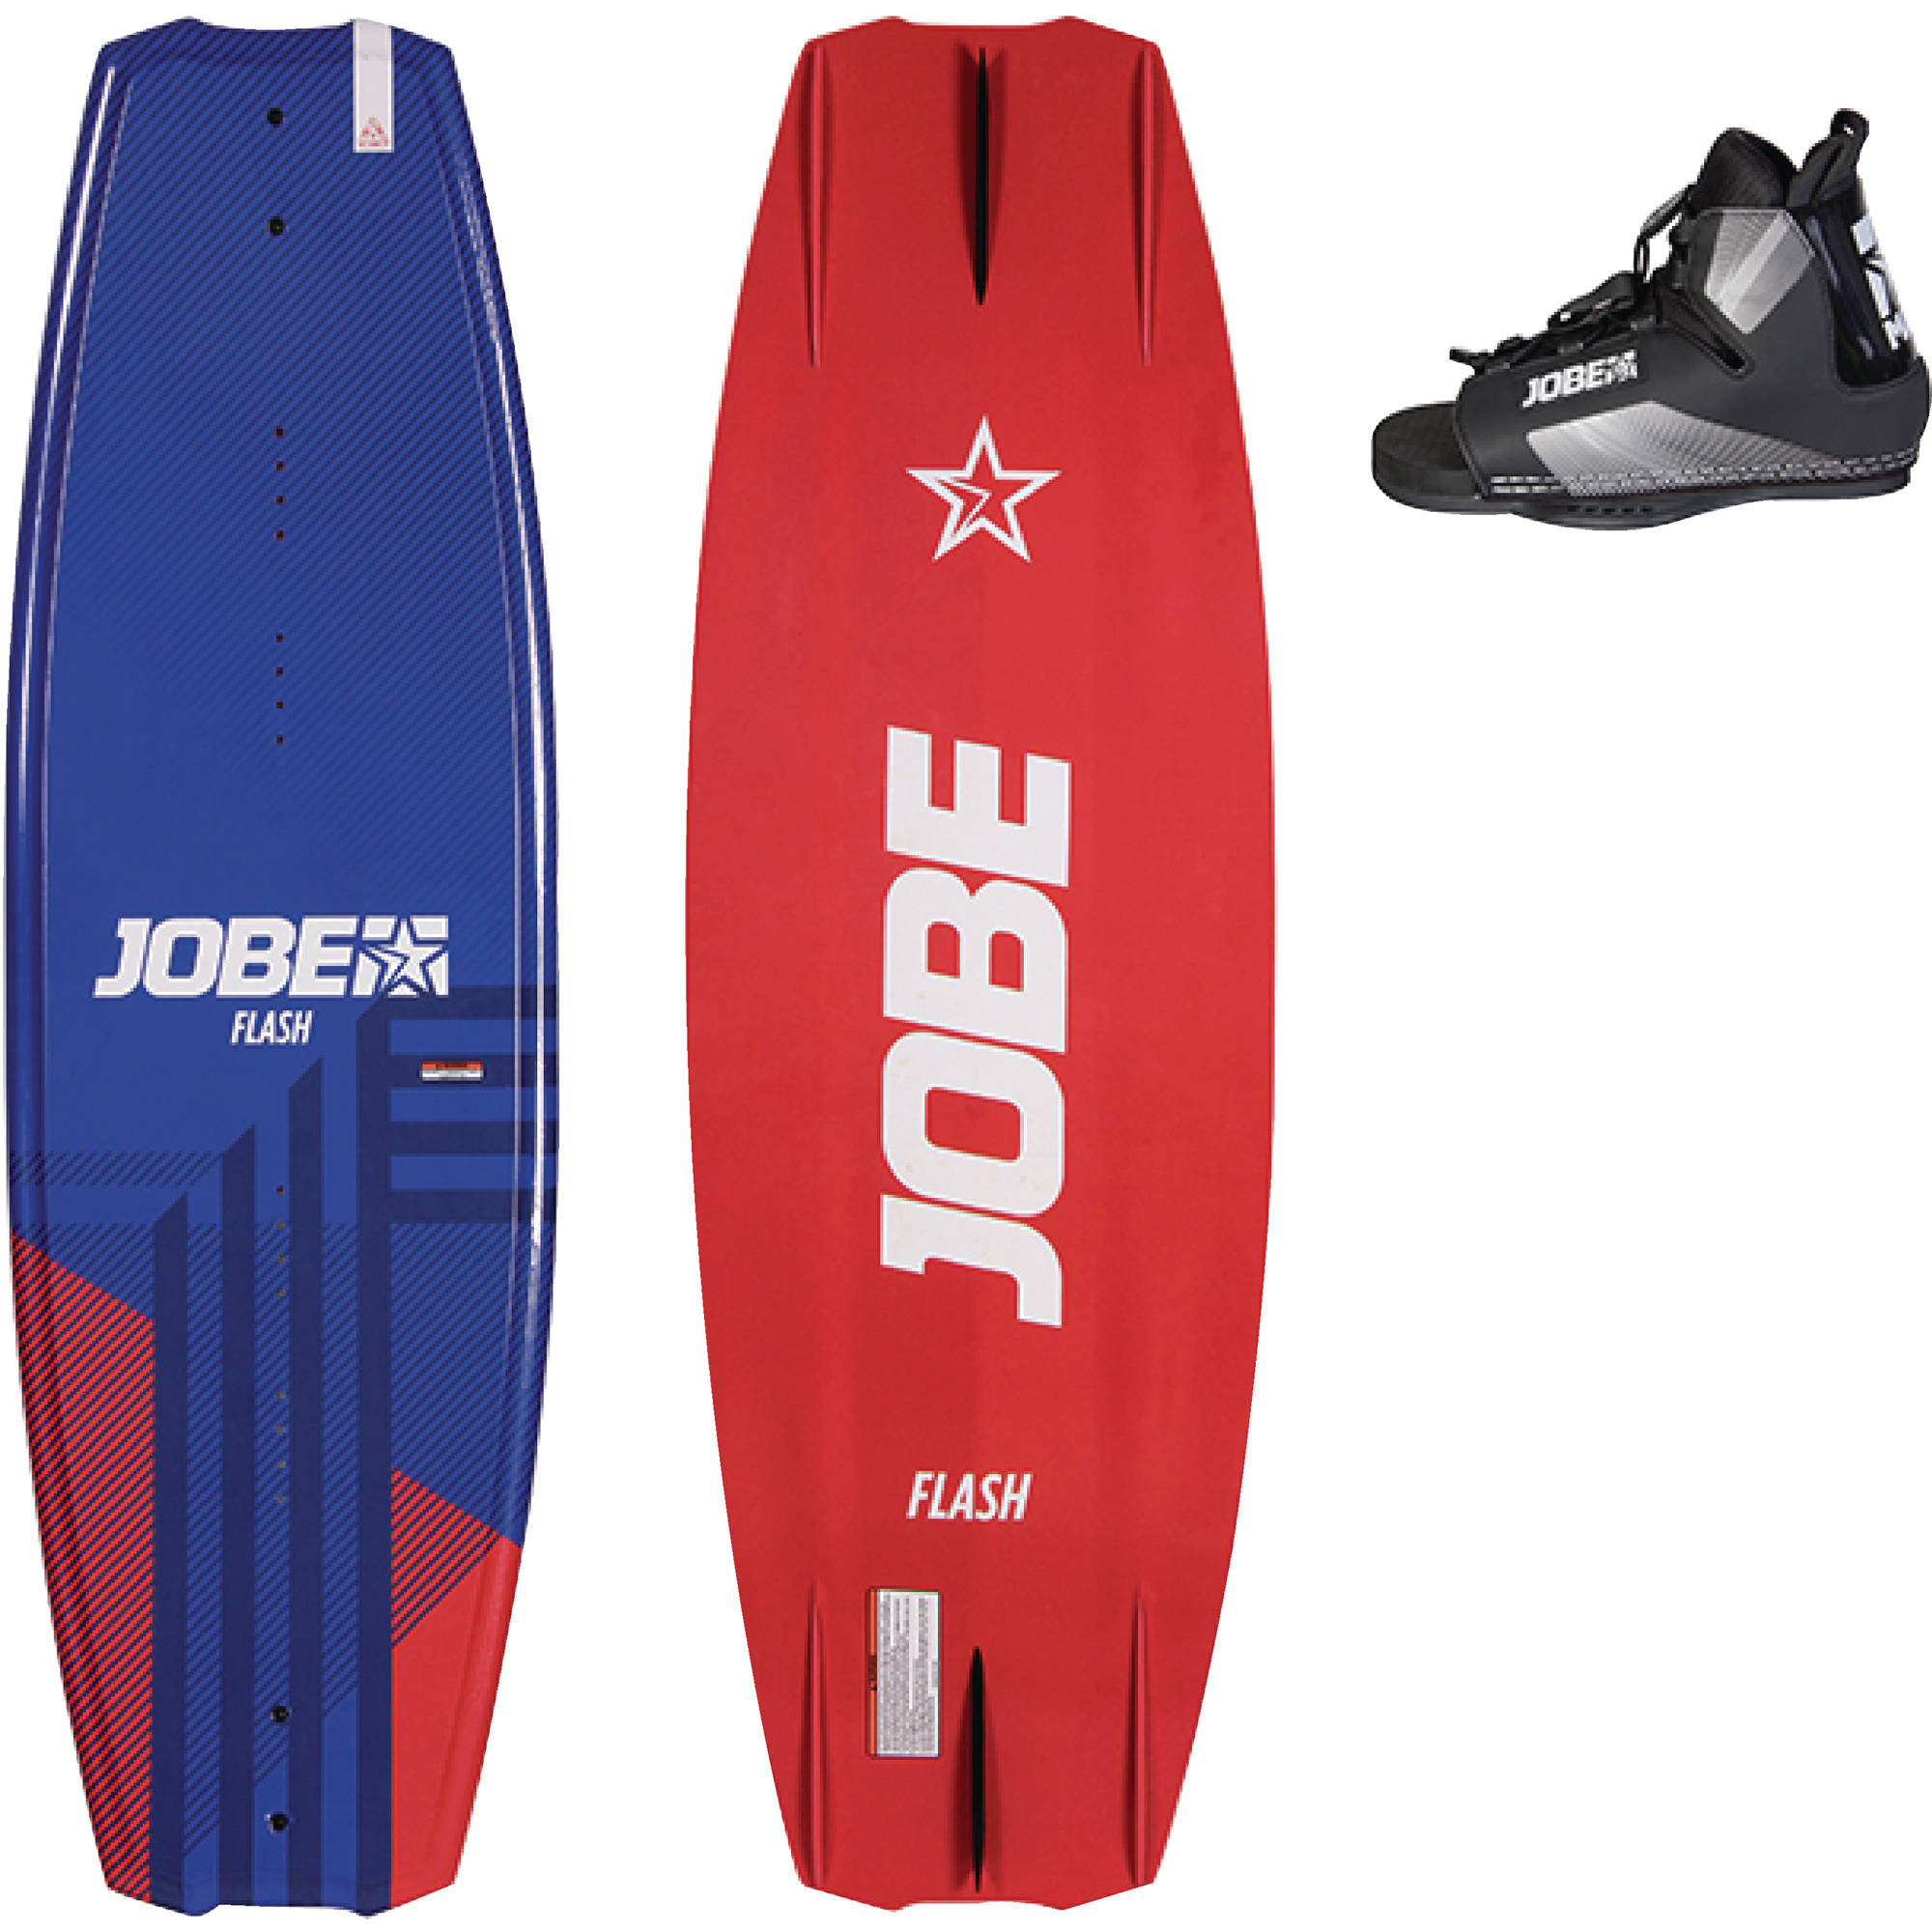 Jobe 278917801 Flash 138 3-Stage Rocker & Integrated Fins Wakeboard Package by Jobe Sport International